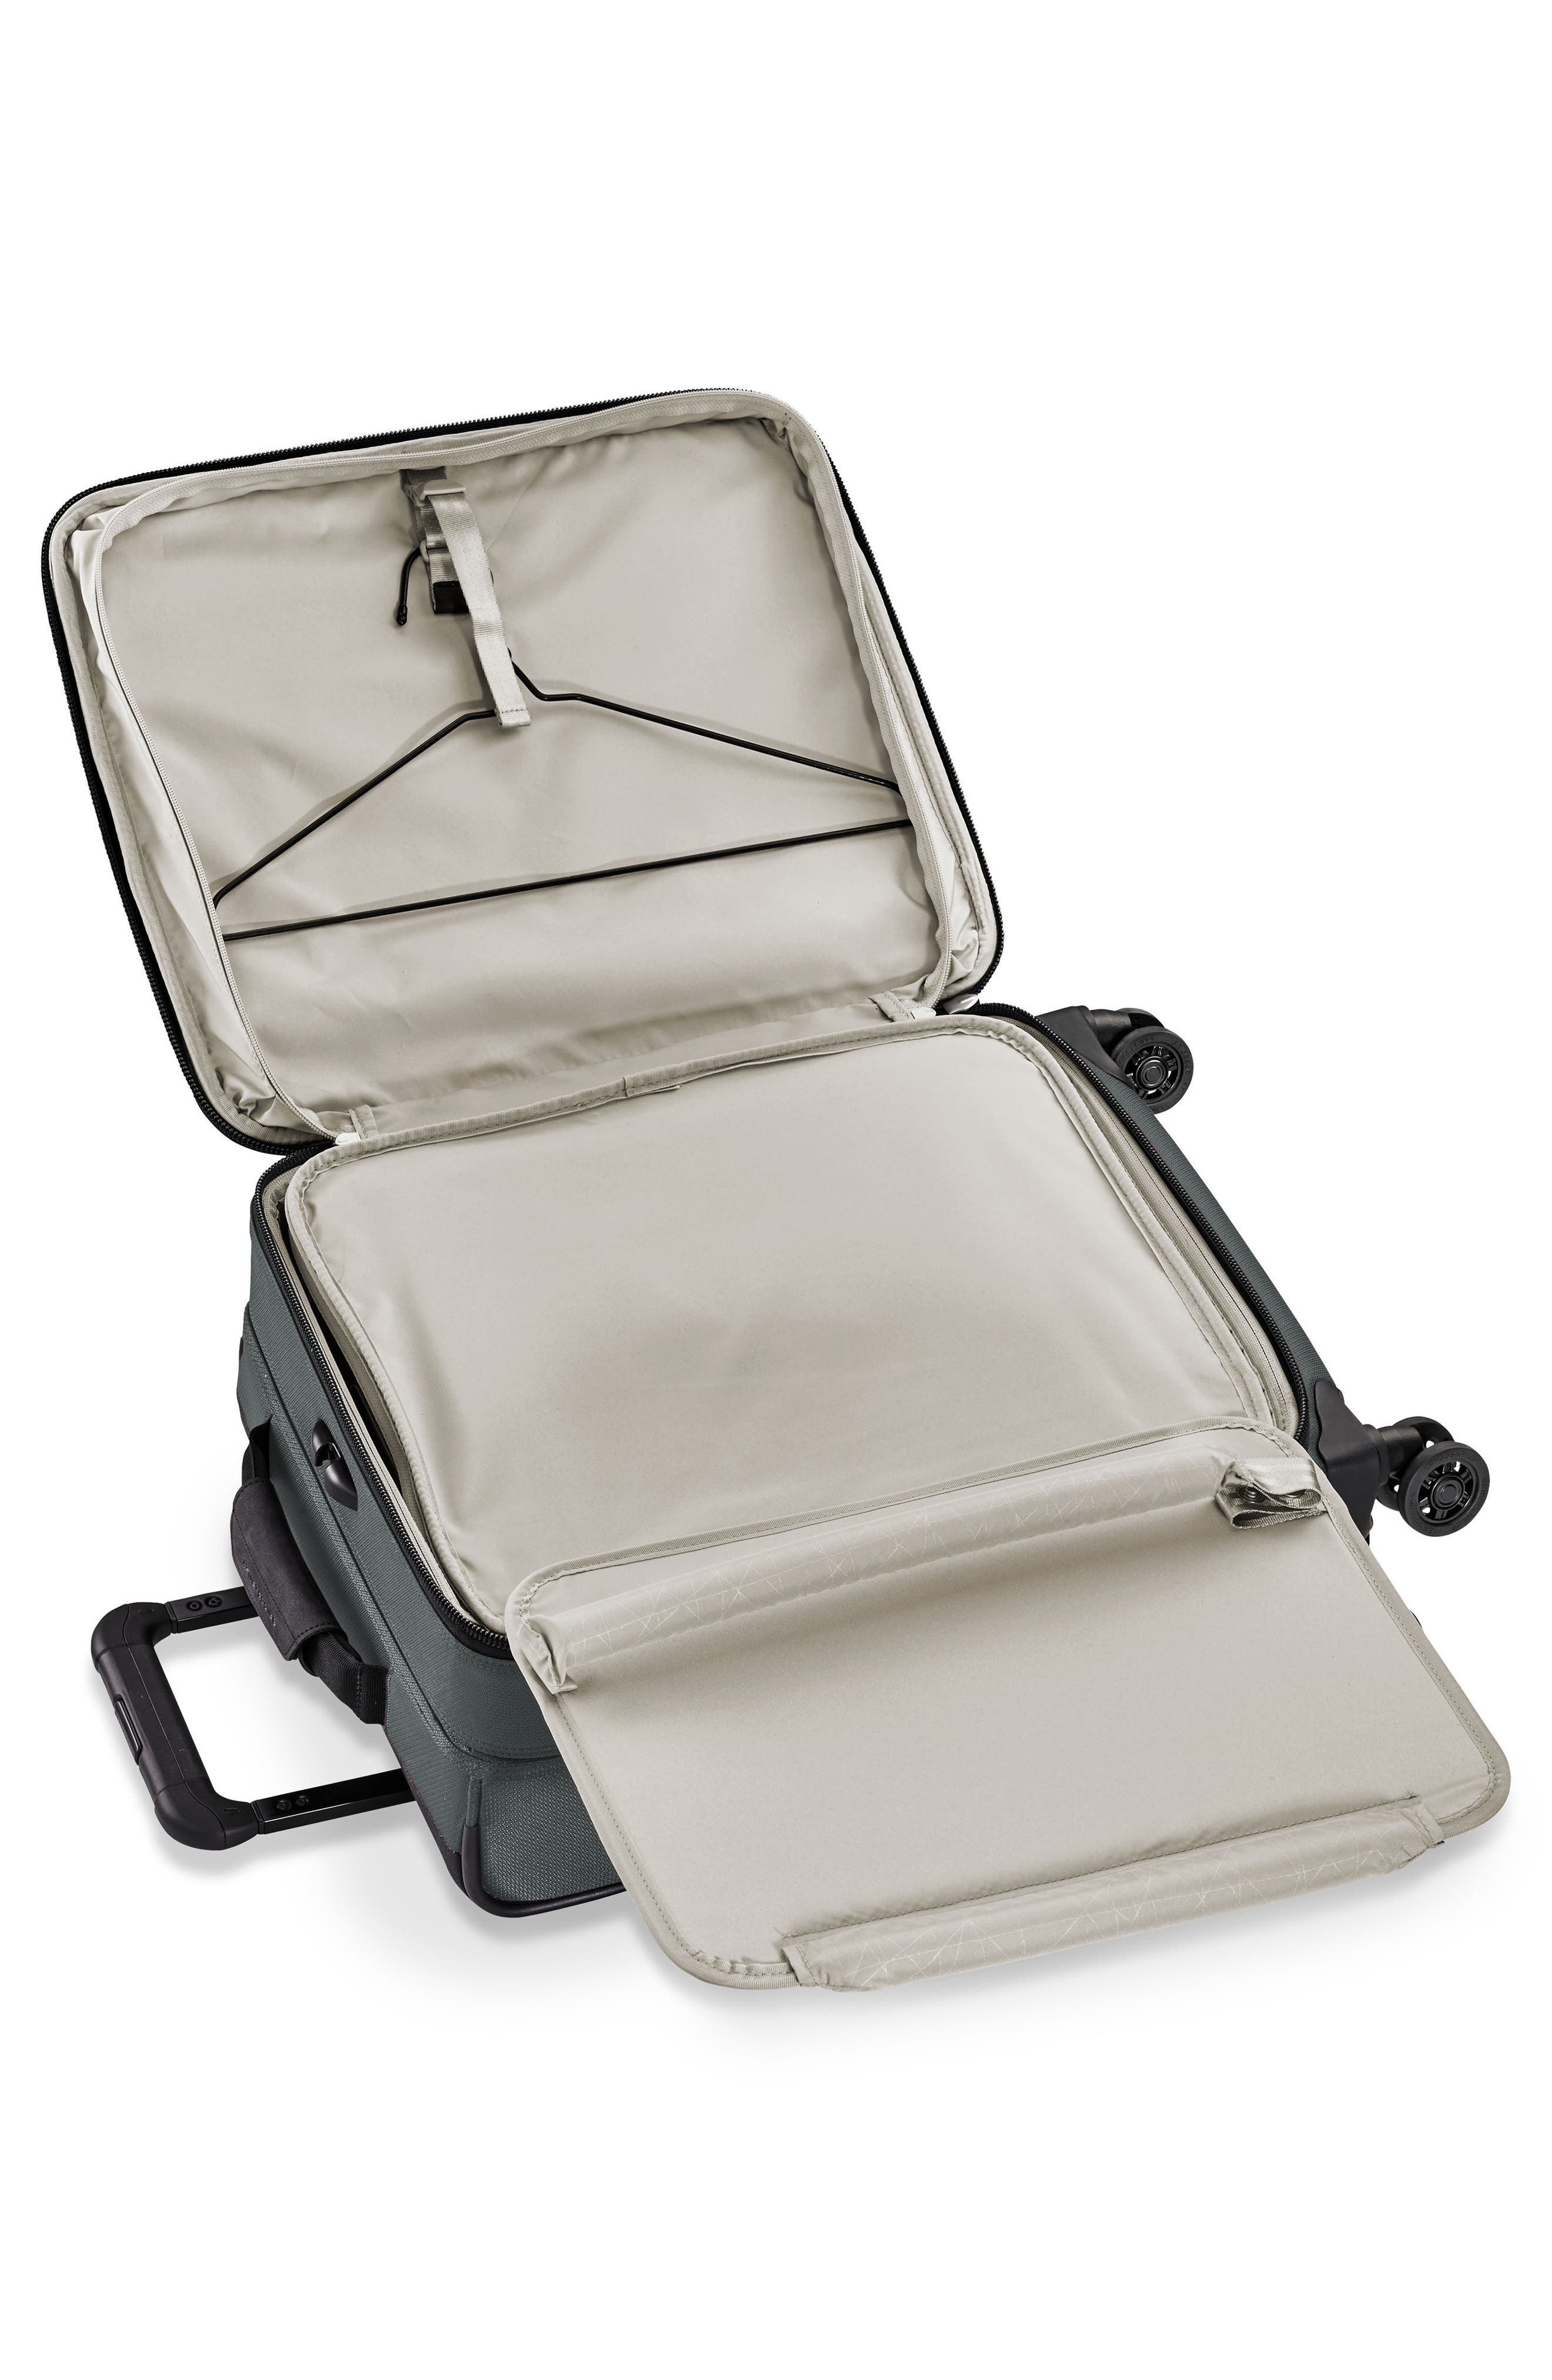 Alternate Image 3  - Briggs & Riley Transcend VX Wide Expandable 21-Inch Spinner Suitcase